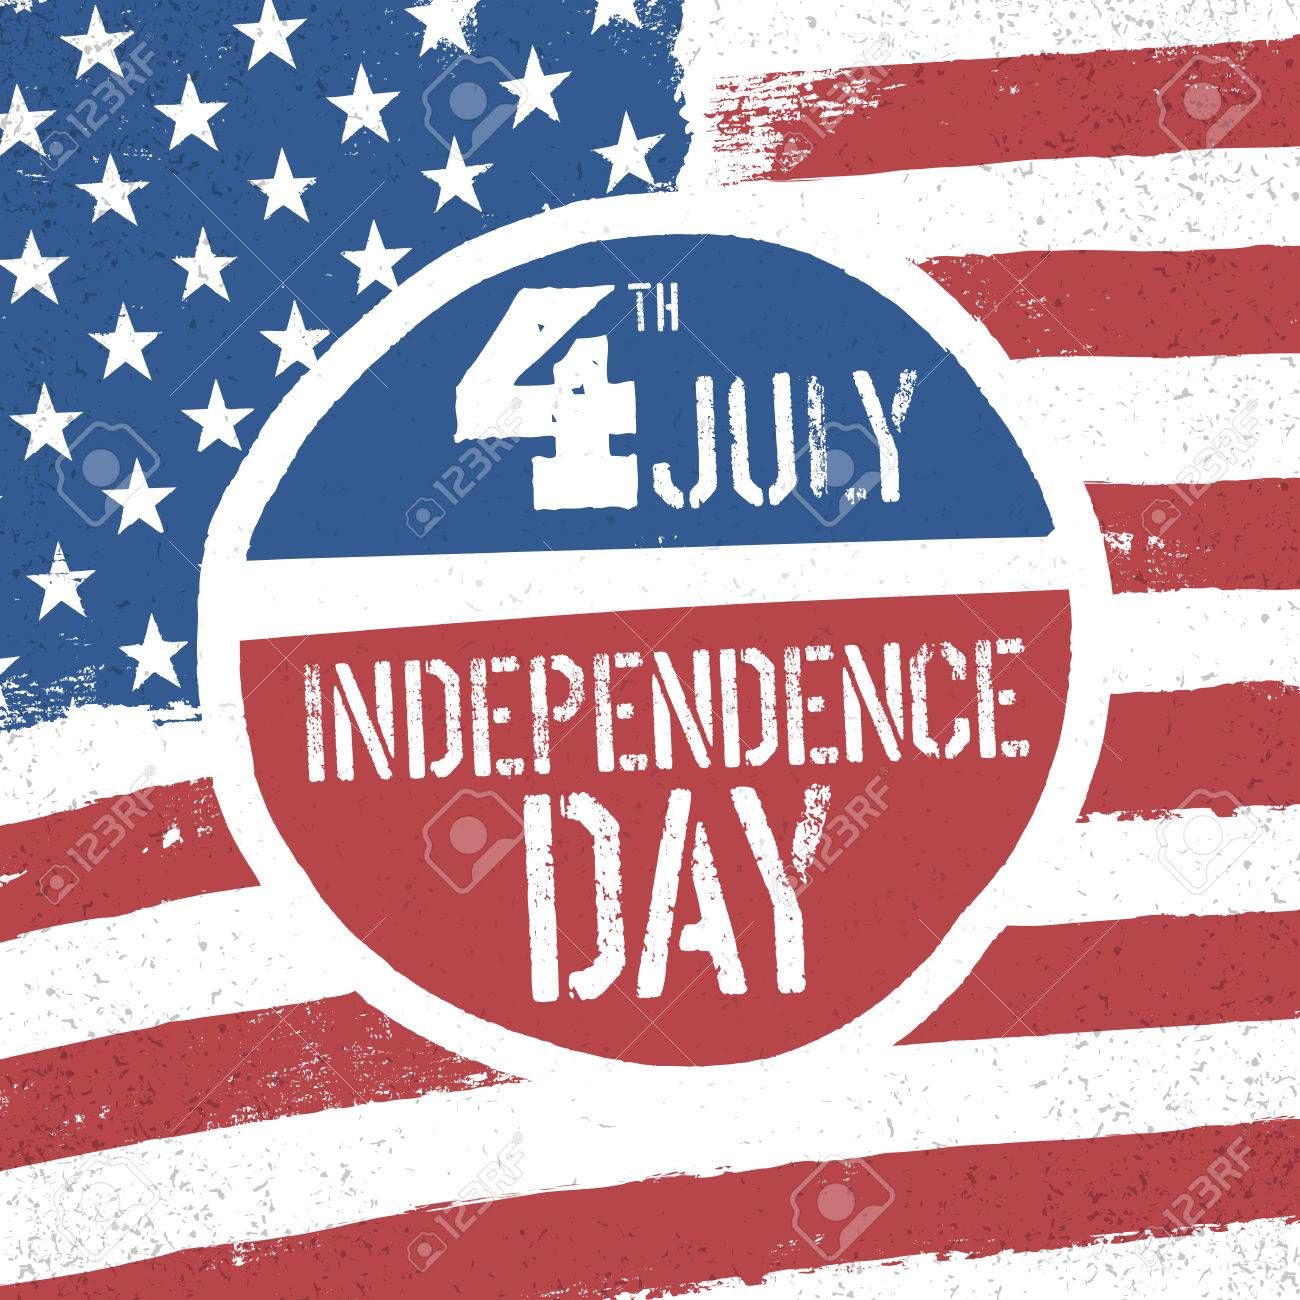 4th July Independence Day American Flag Patriotic Background